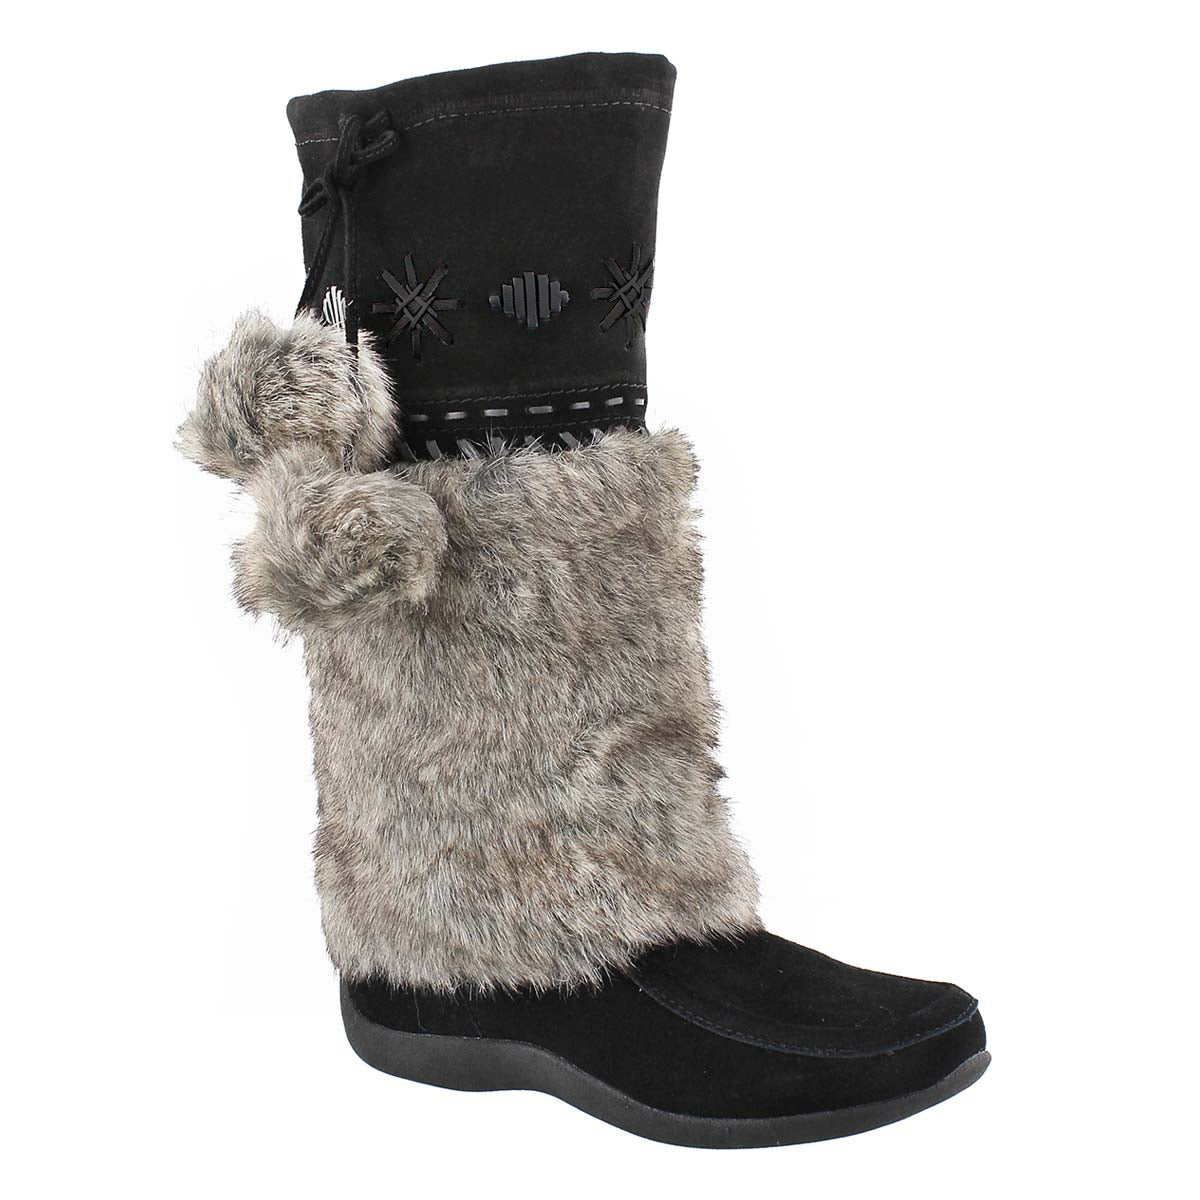 Women's CANDY 4 black suede mukluks